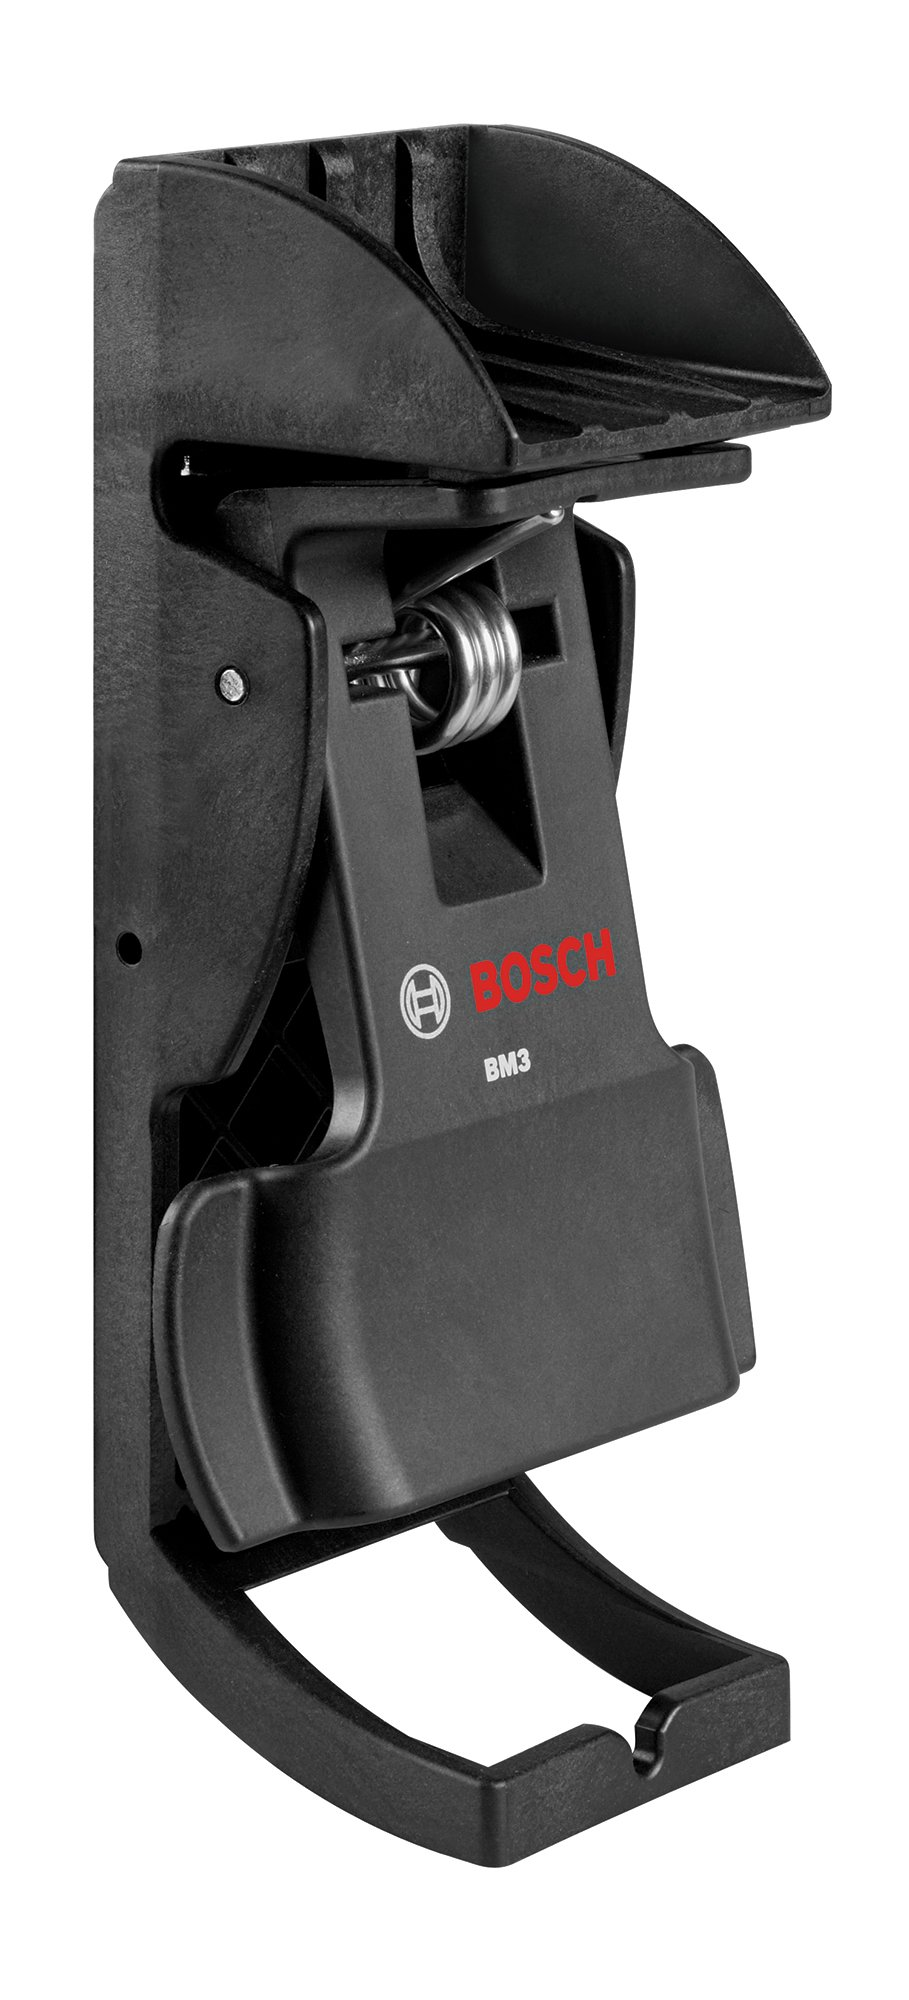 Bosch Positioning Device for Line and Point Lasers BM3 by Bosch (Image #3)